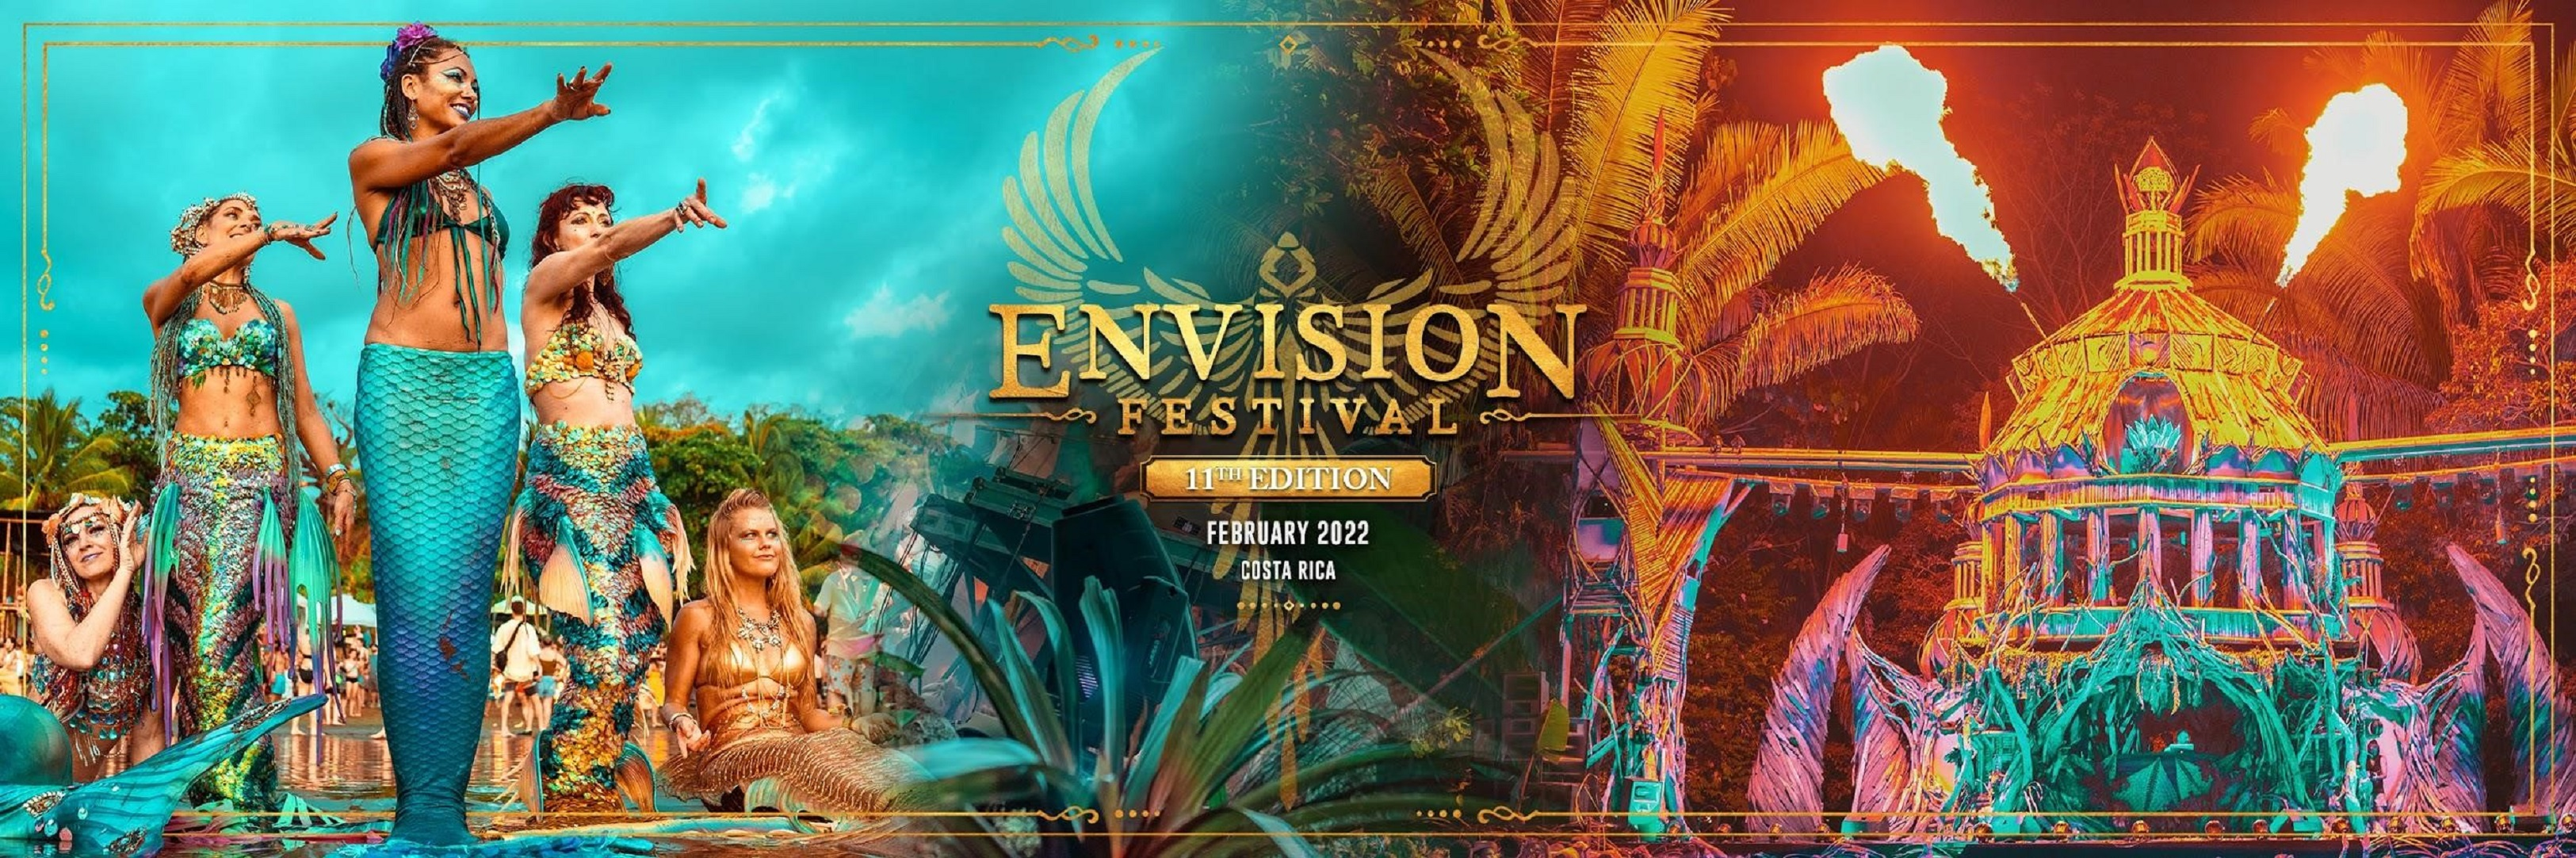 ENVISION 2022 TRAILER LIVE NOW